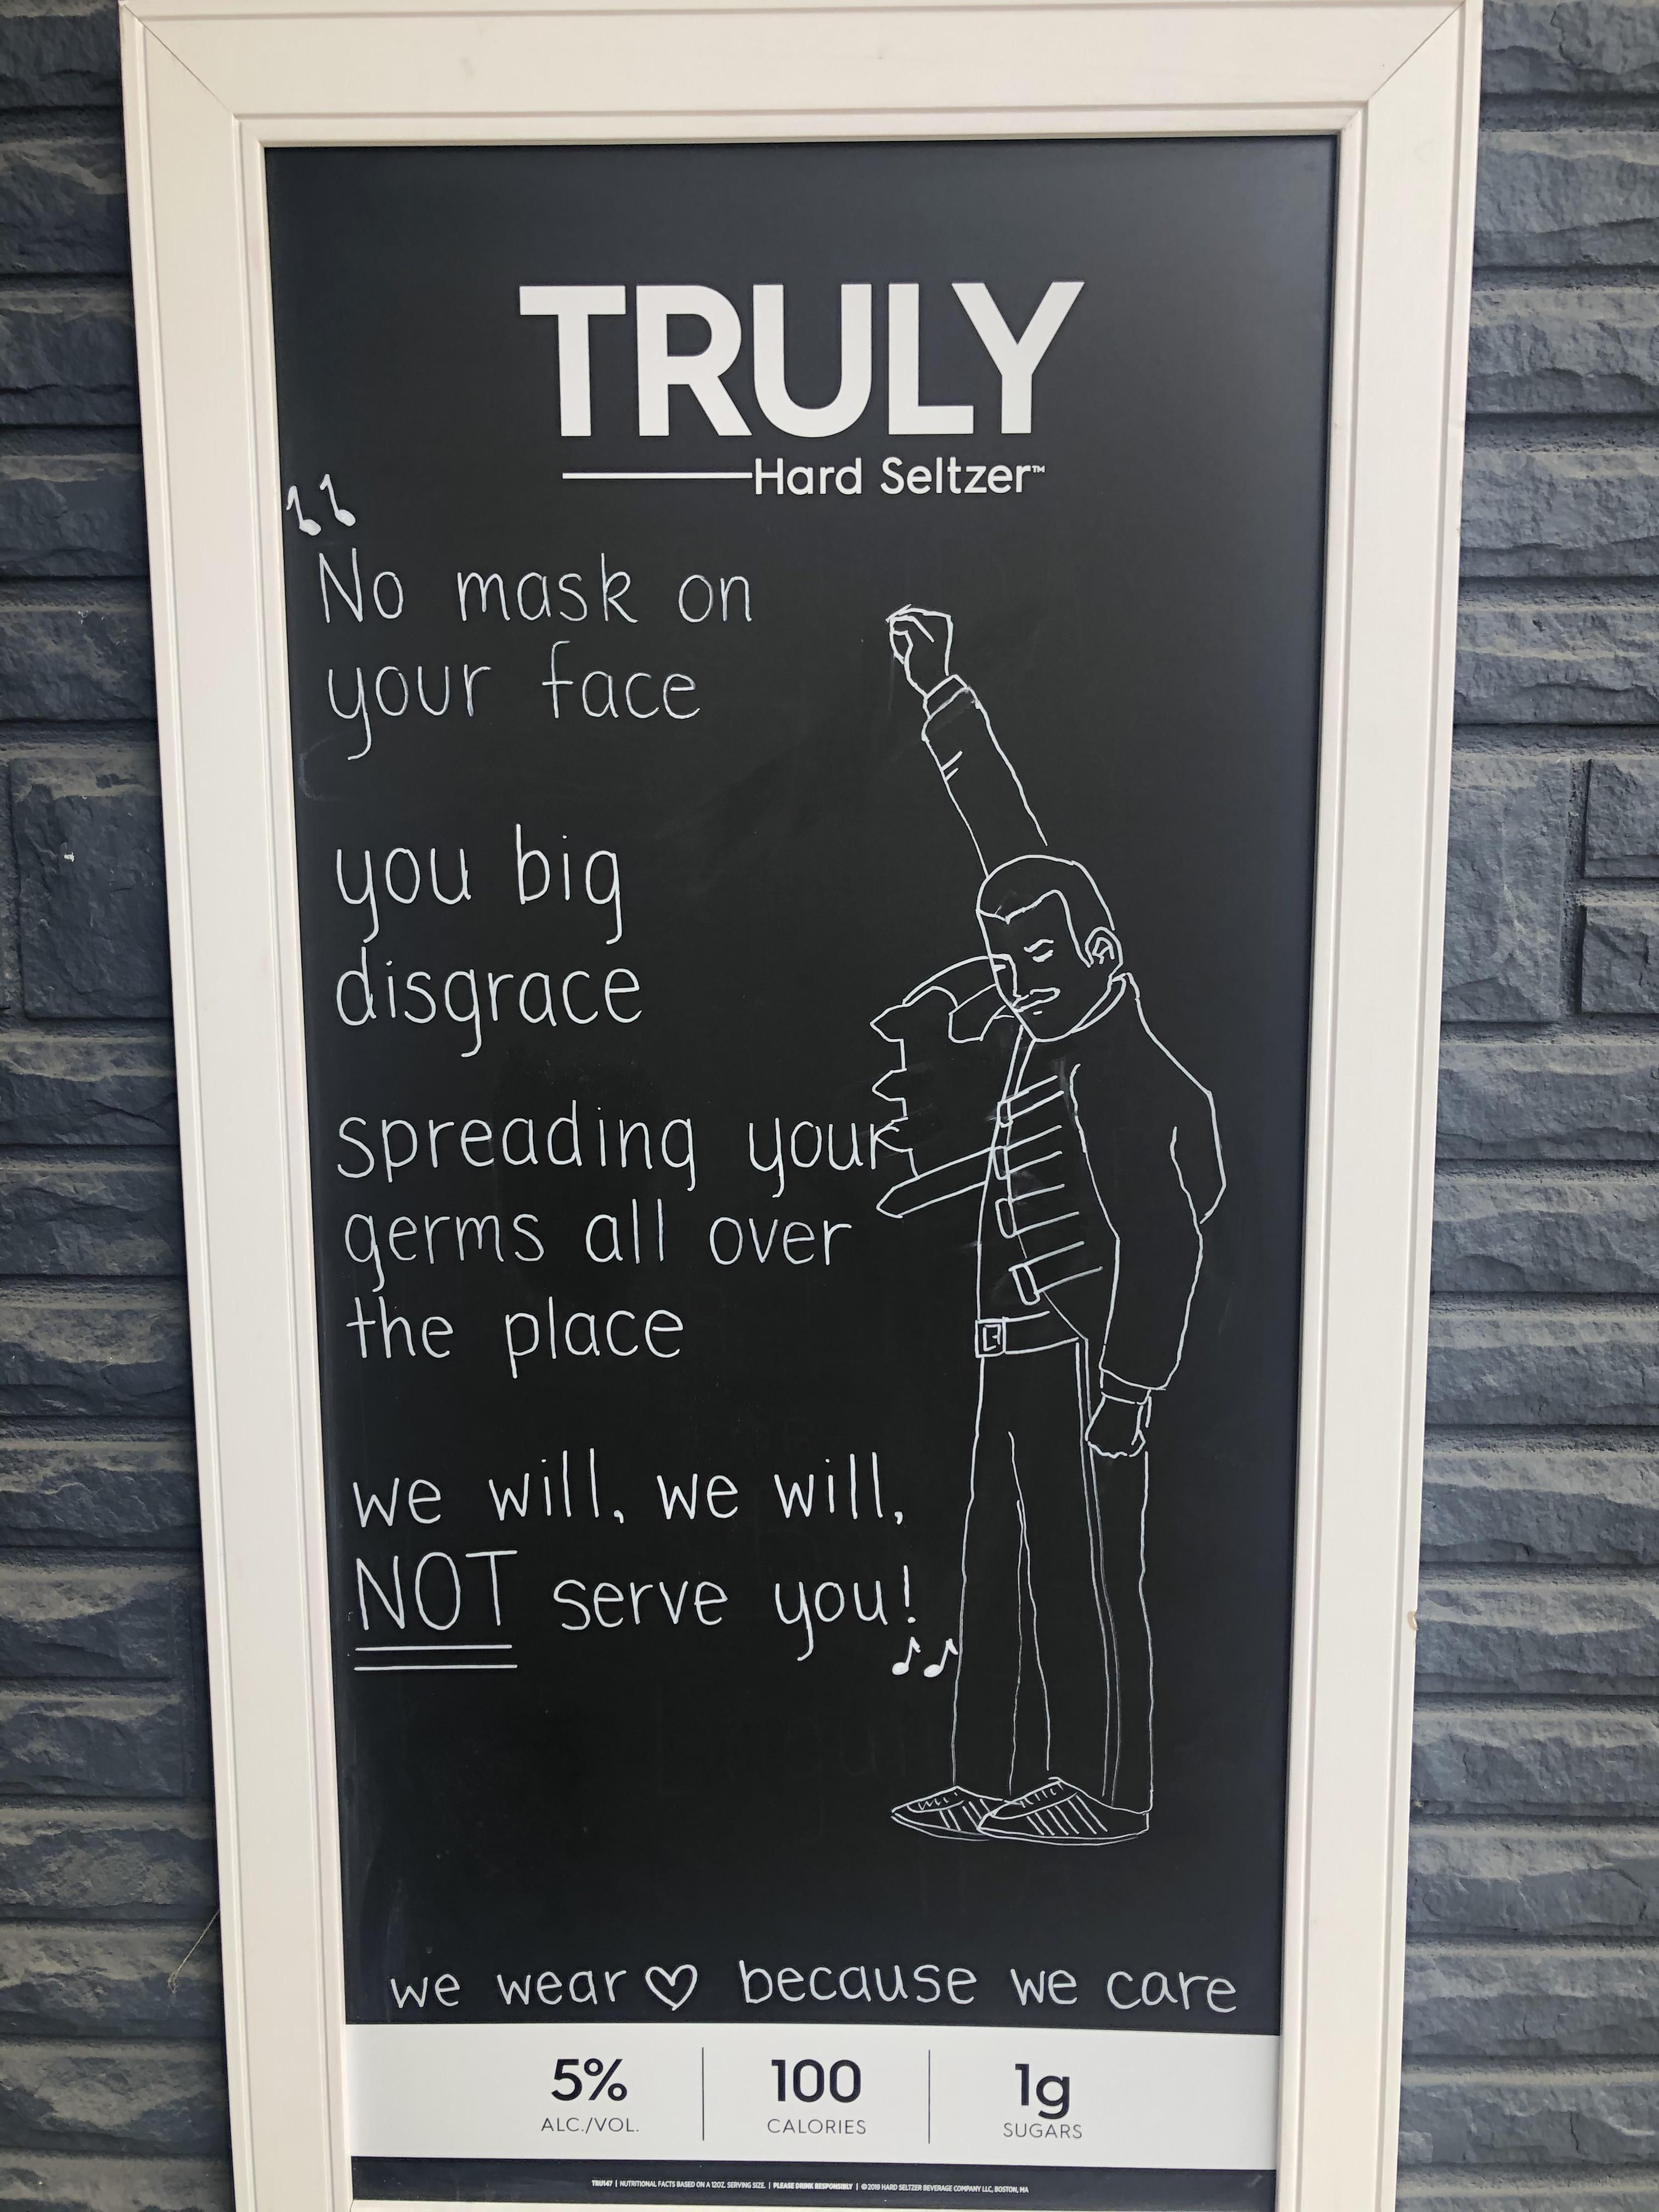 This sign outside a local business